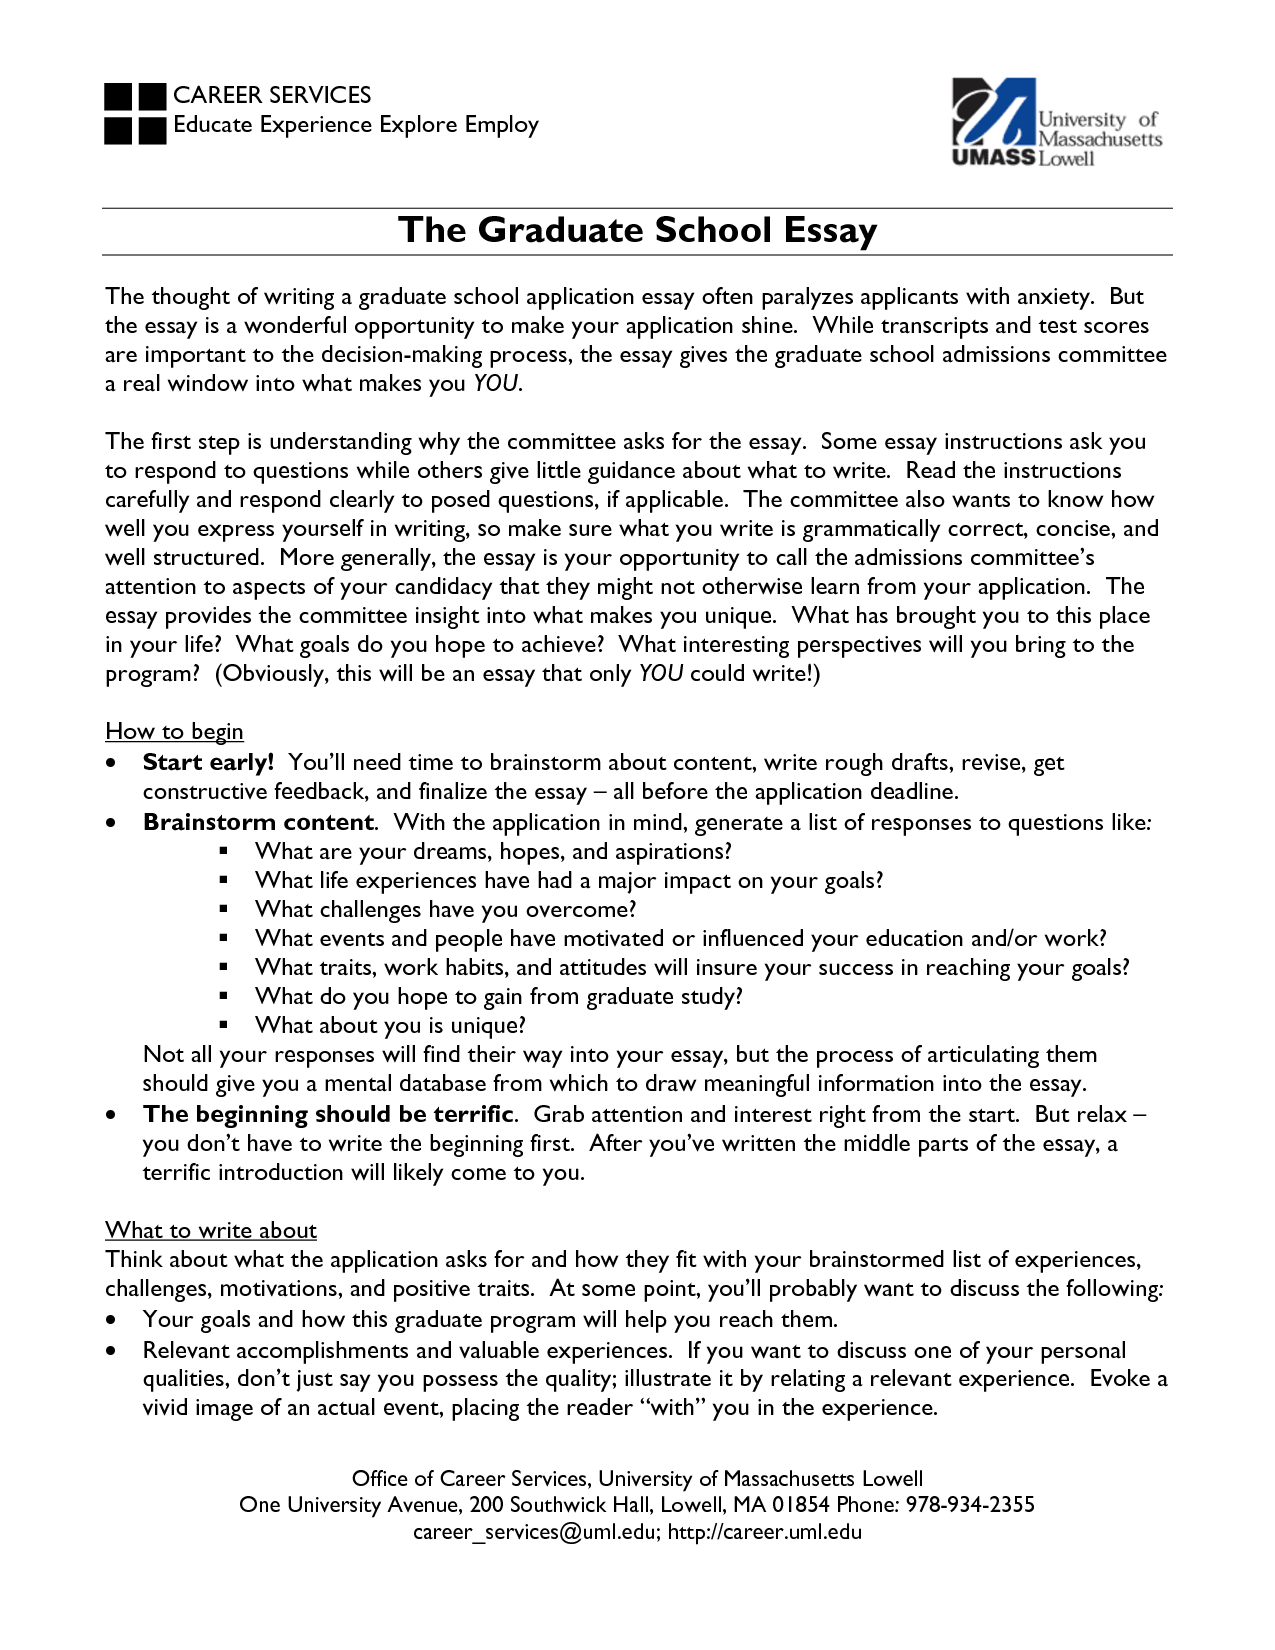 university admission essay format University of illinois at urbana essay questions for freshman the essay part of the application is important because it gives us more insight into who.